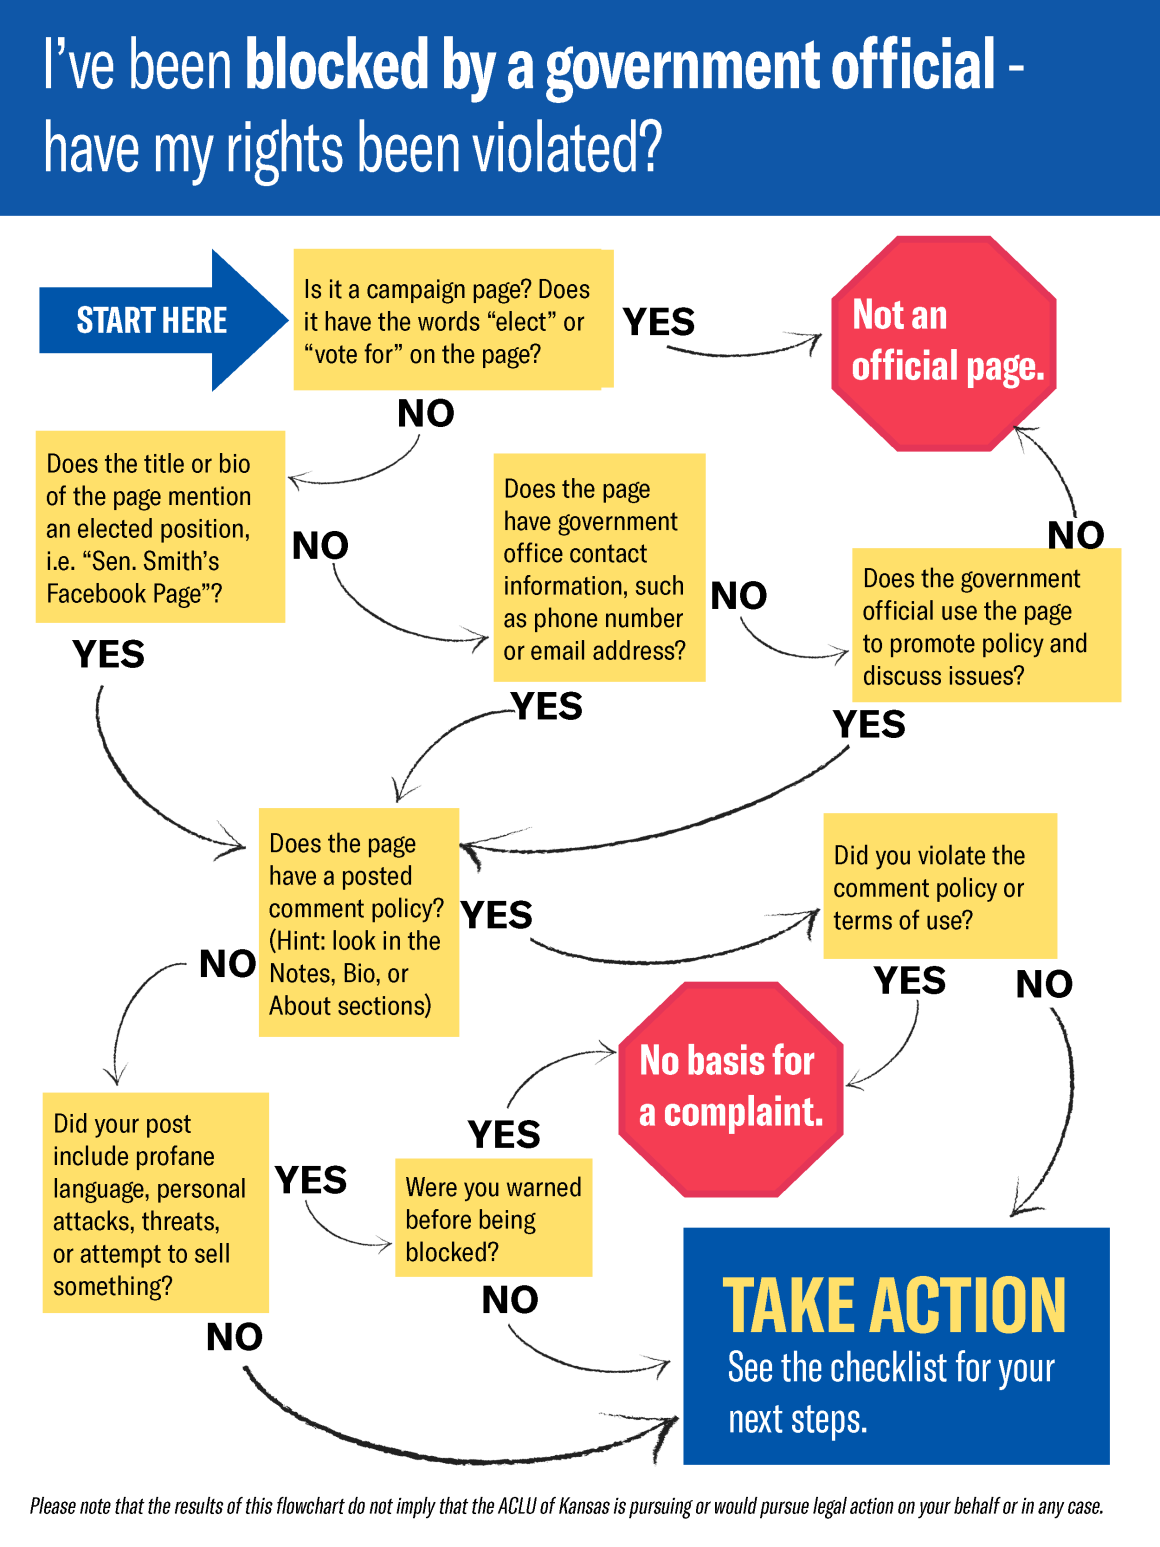 I've been blocked by a government official - have my rights been violated? flowchart